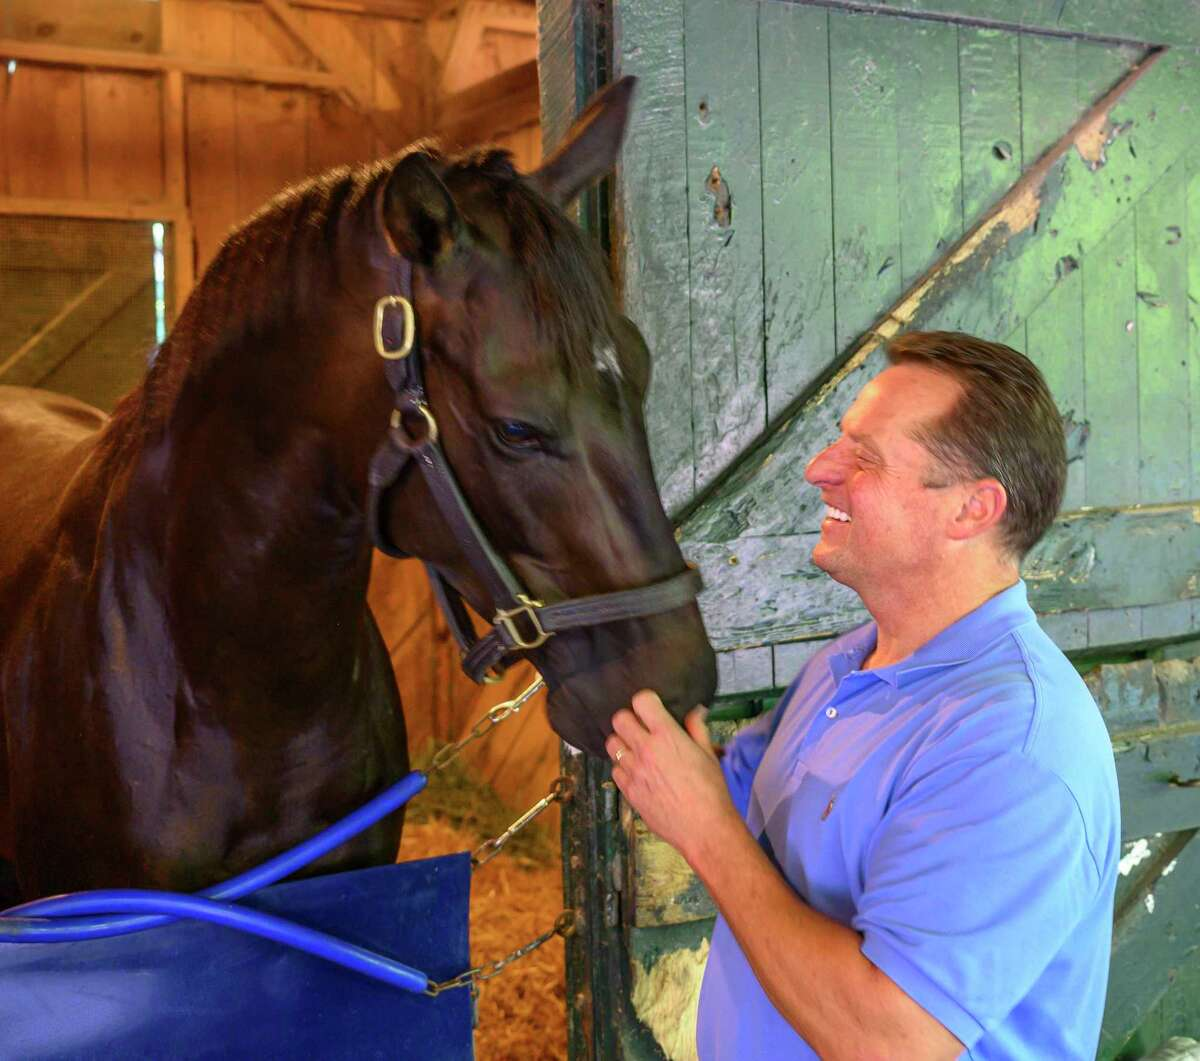 Trainer Tom Amoss enjoys a playful moment with his filly, Kentucky Oaks winner Serengeti Empress in the barn area at the Saratoga Race Course Thursday, Aug. 1, 2019 in Saratoga Springs, N.Y. Photo Special to the Times Union by Skip Dickstein